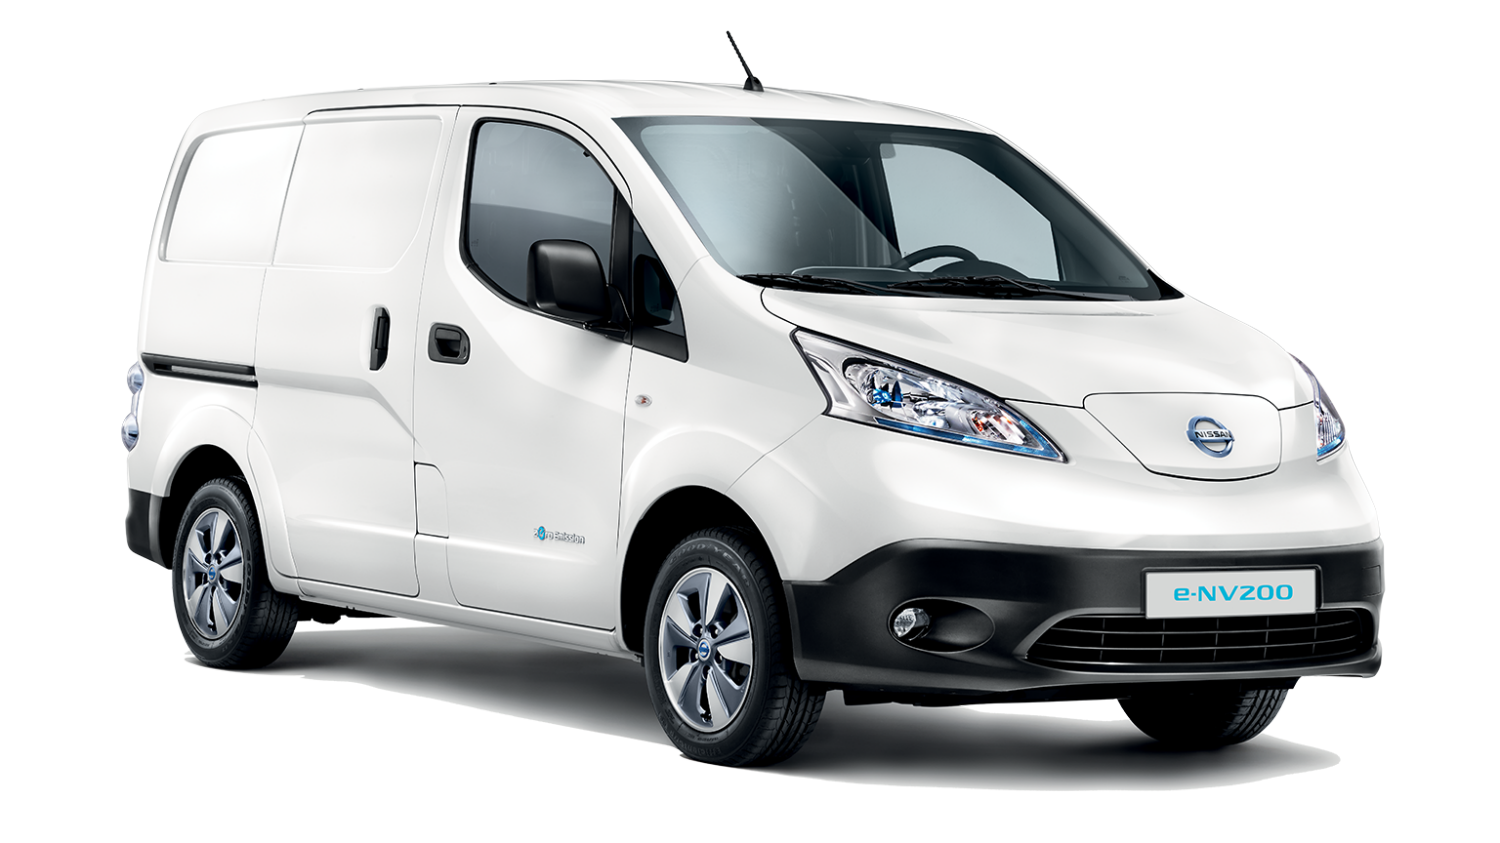 prix caract ristiques nissan e nv200 nissan. Black Bedroom Furniture Sets. Home Design Ideas